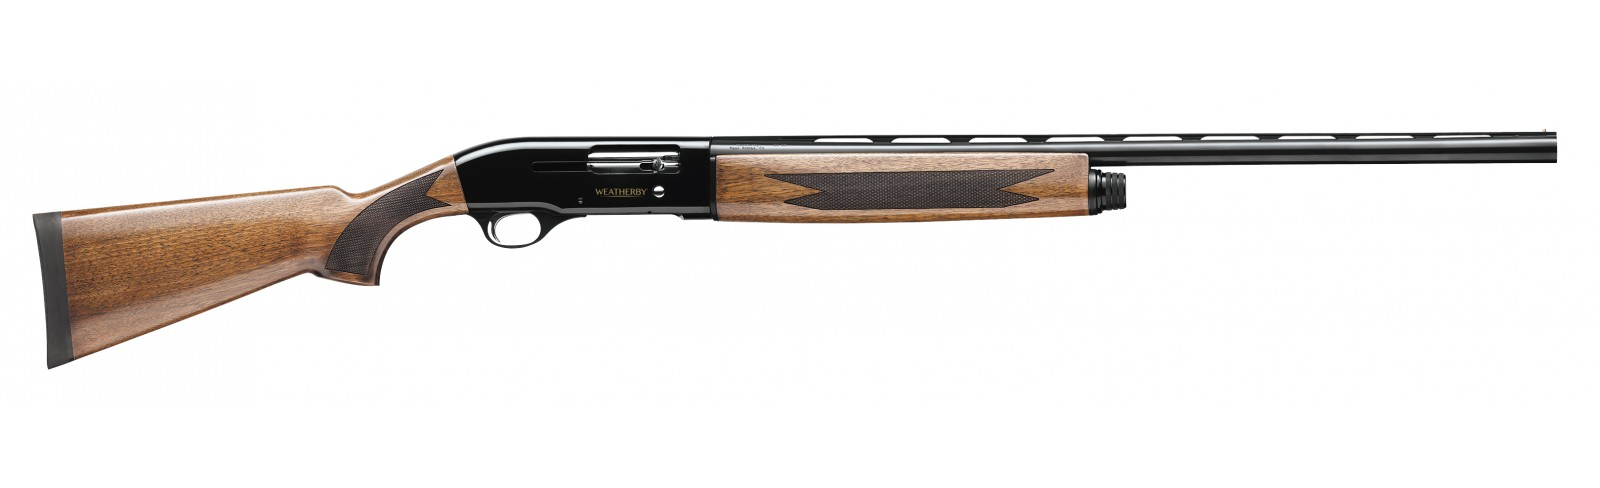 image of the Weatherby SA-08 Deluxe